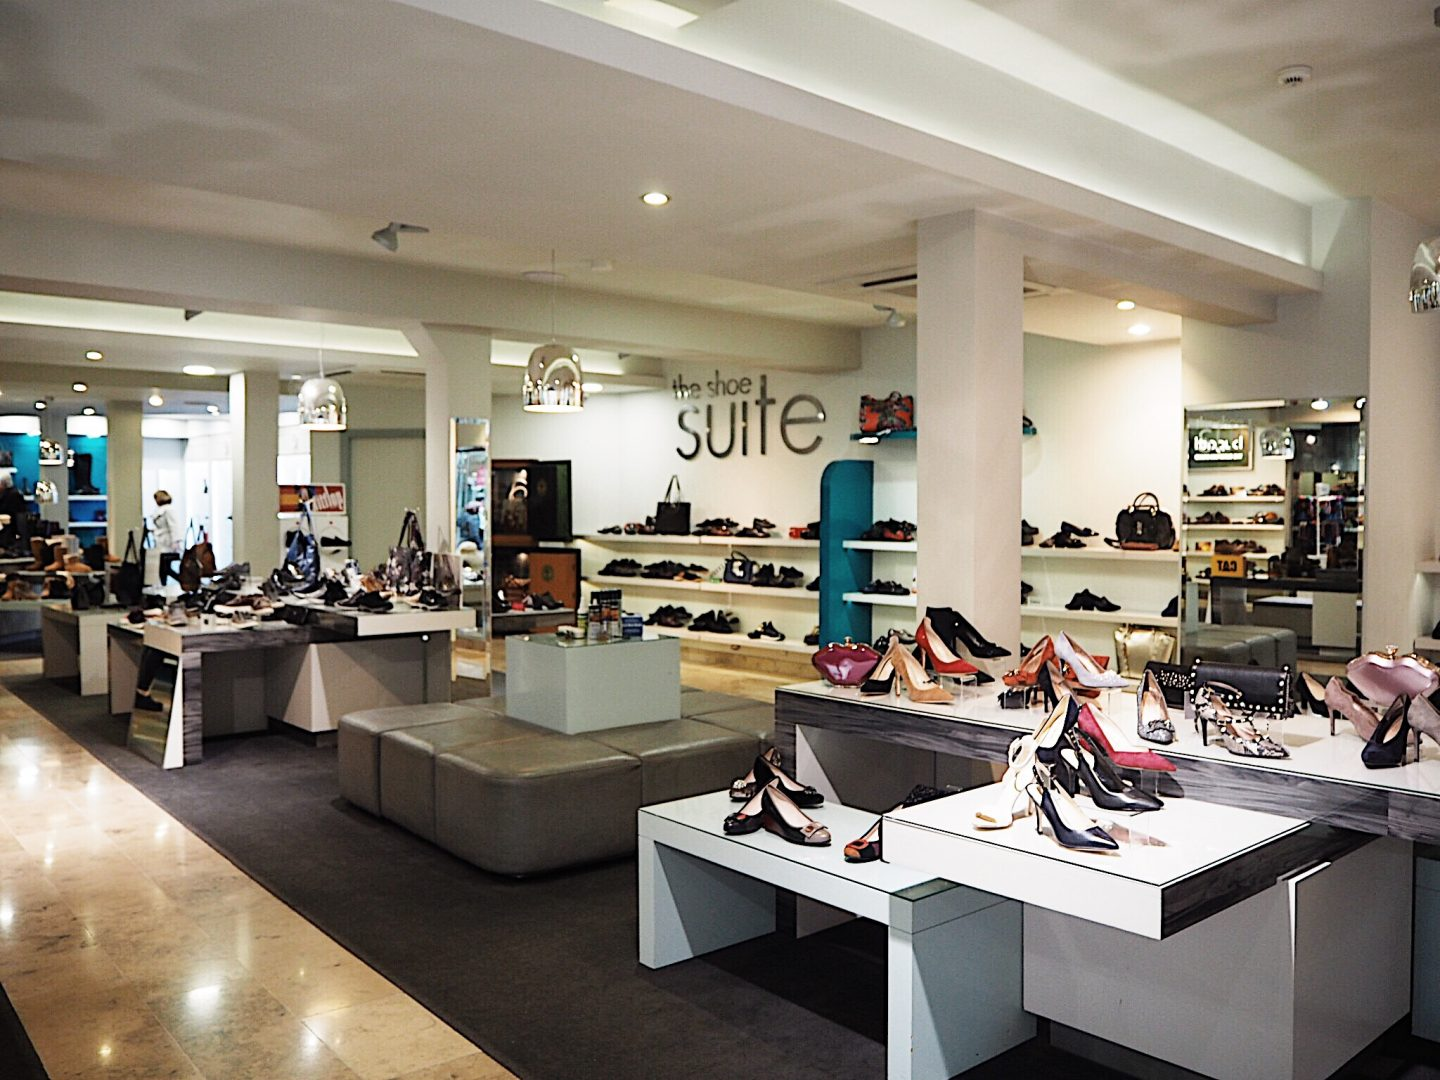 The Shoe Suite – Cork's Hidden Treasure Trove